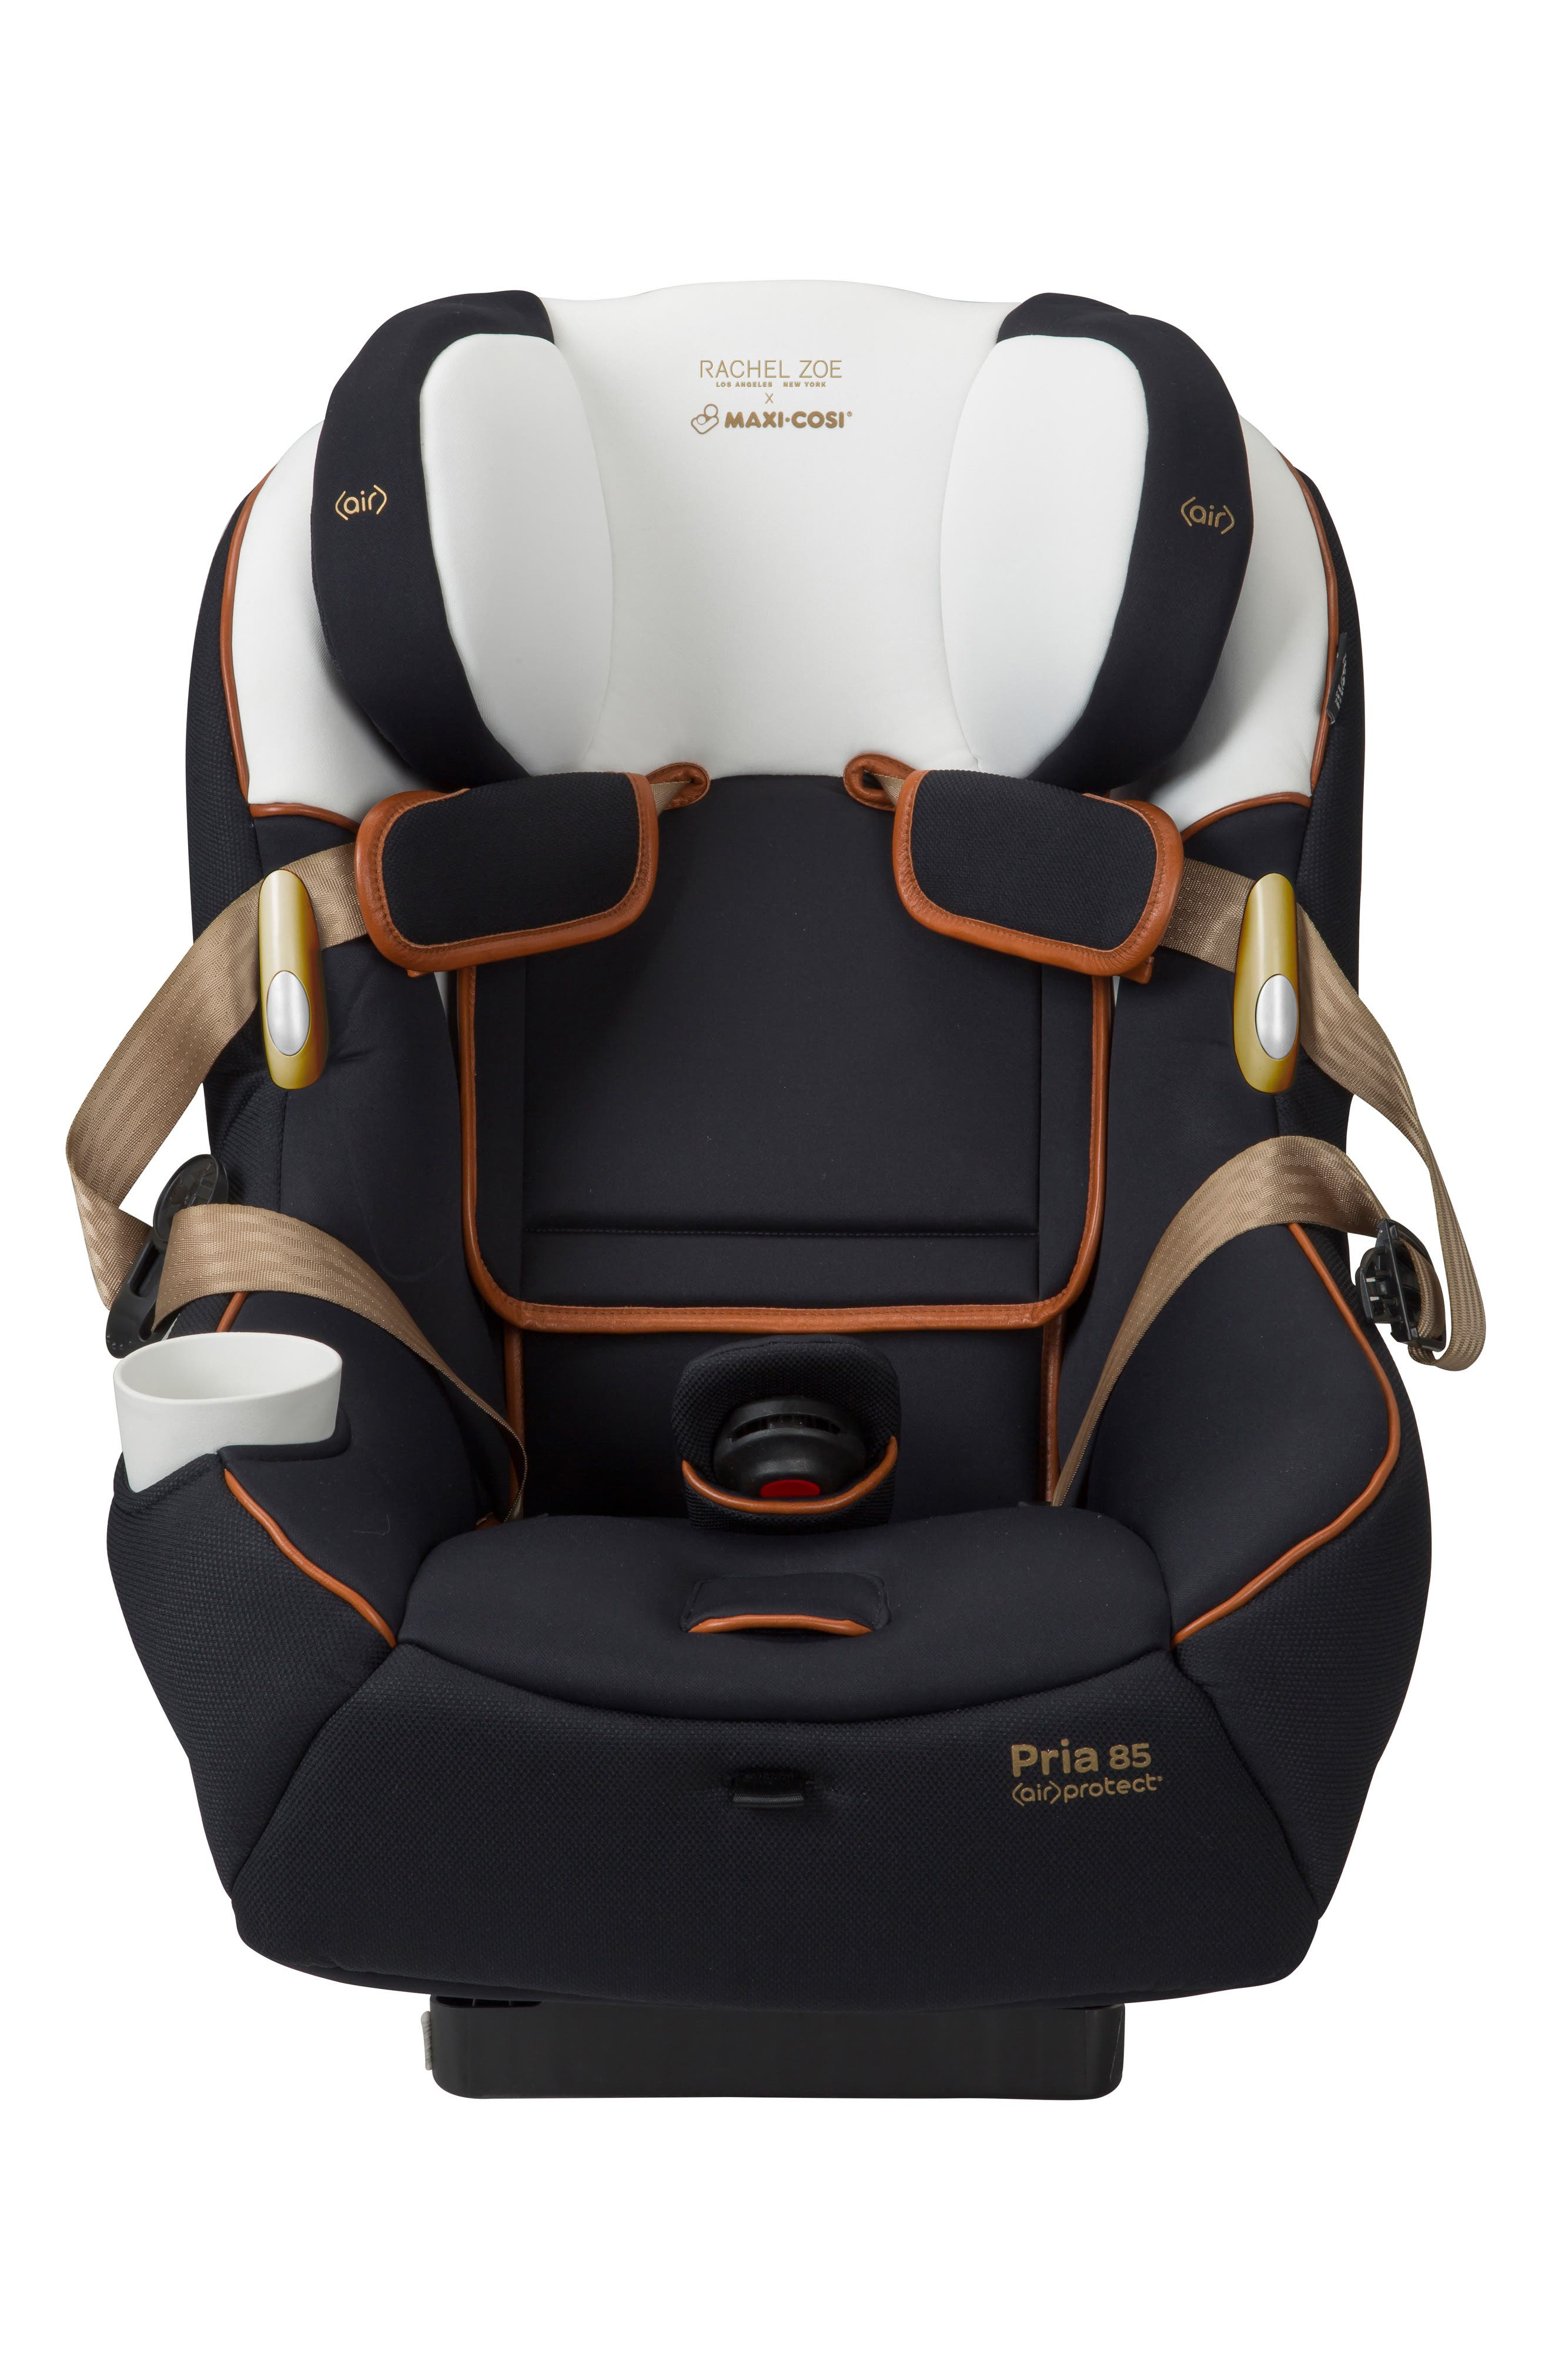 x Rachel Zoe Pria<sup>™</sup> 85 - Special Edition Car Seat,                             Alternate thumbnail 6, color,                             005